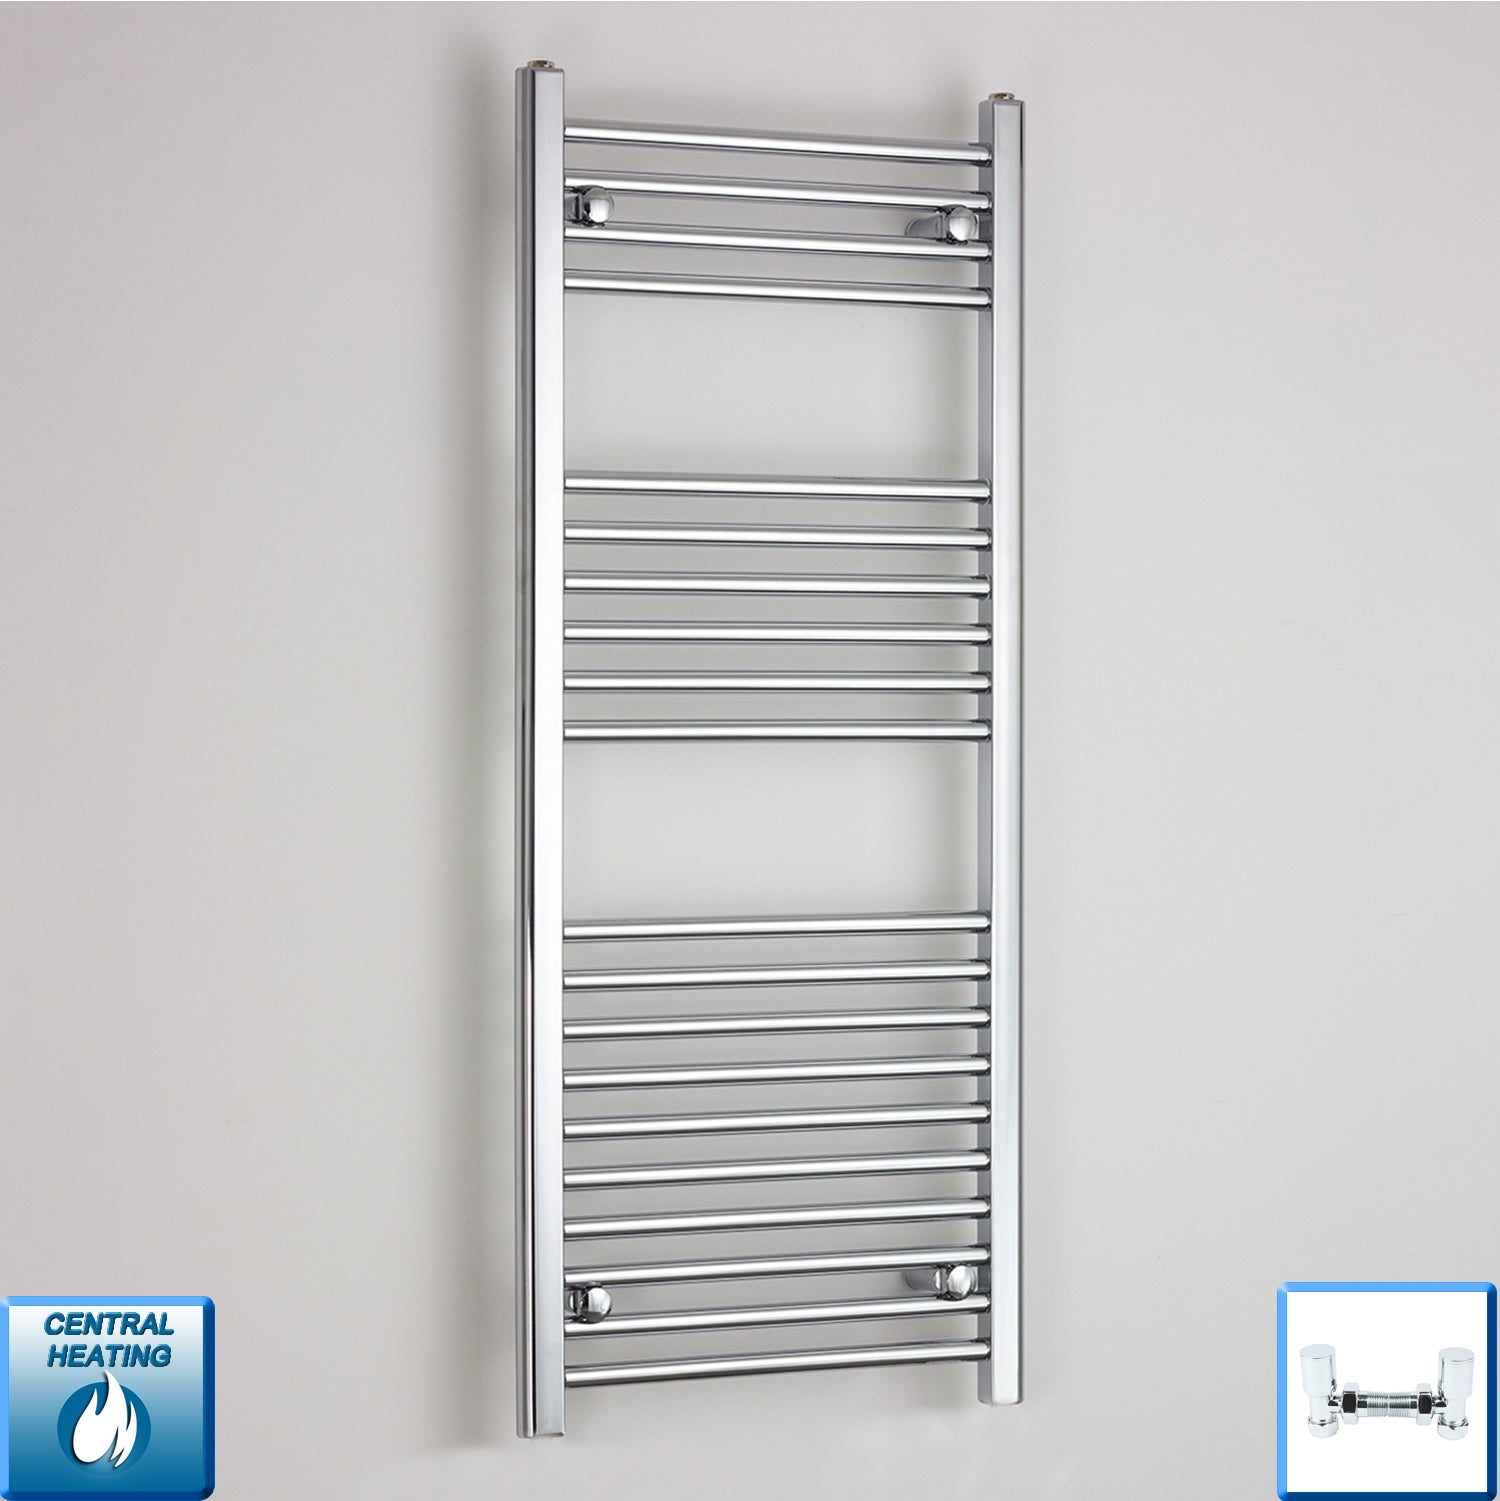 600mm Wide 1200mm High Flat Chrome Heated Towel Rail Radiator HTR,With Angled Valve